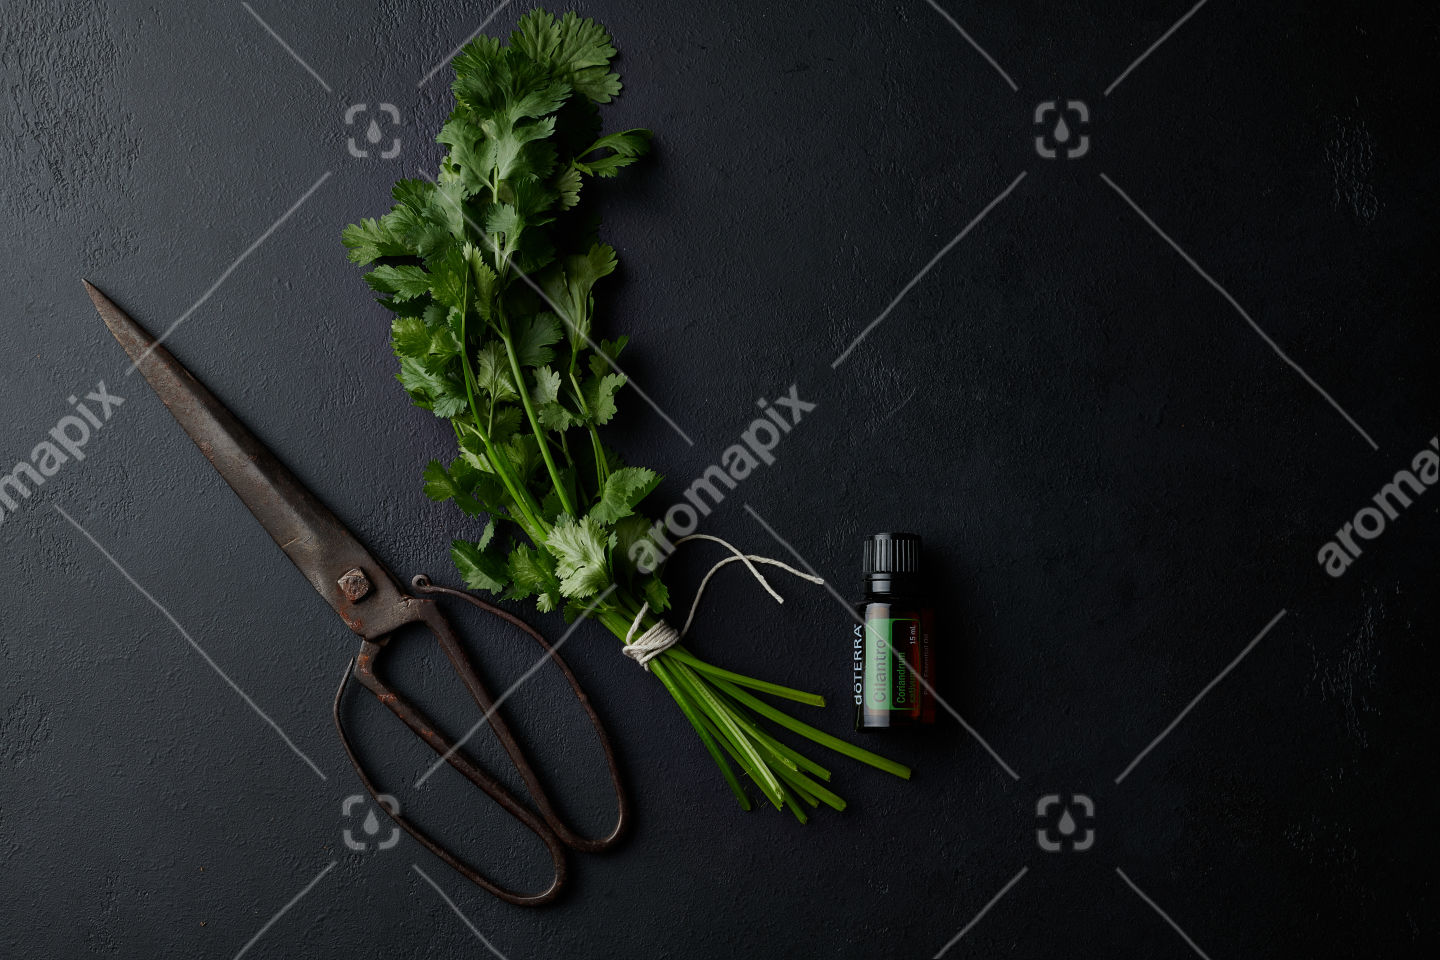 doTERRA Cilantro with scissors and a coriander bunch